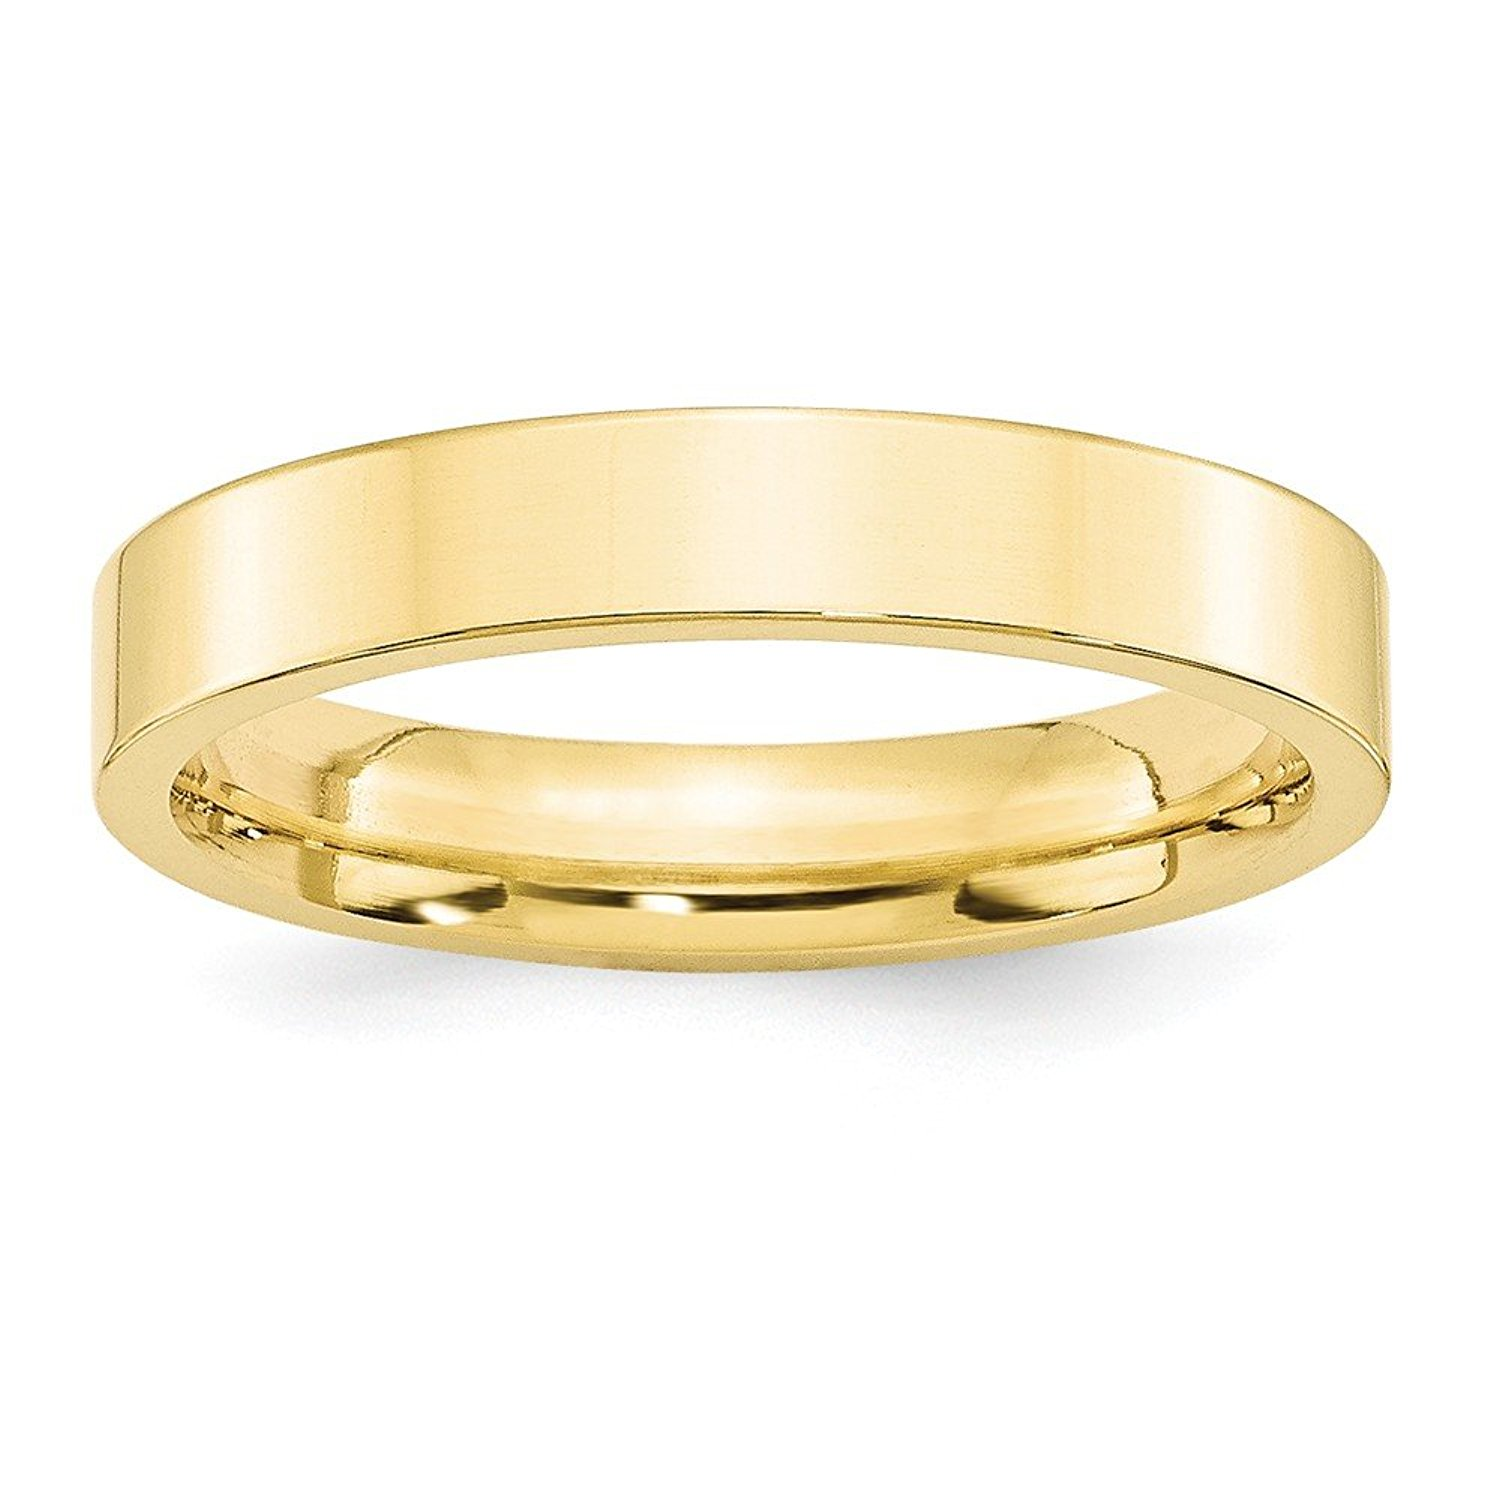 Best Designer Jewelry 10KY 4mm Standard Flat Comfort Fit Band Size 12.5